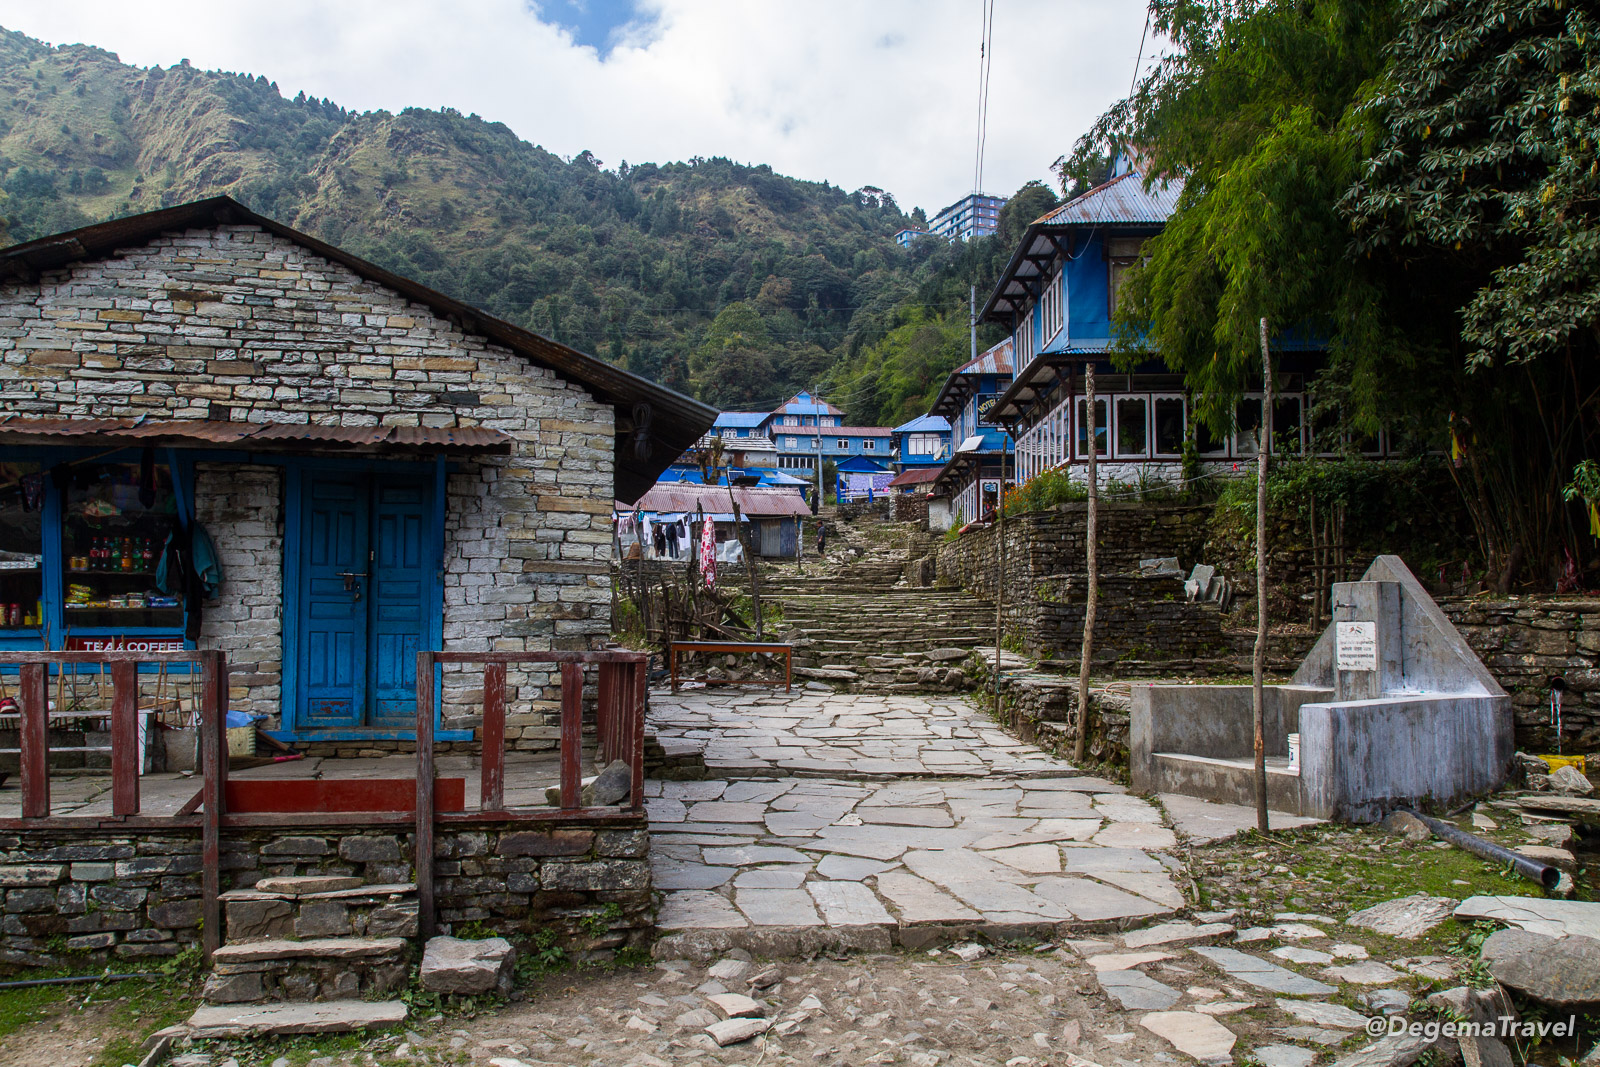 Ghorepani in the Annapurna Conservation Area, Nepal